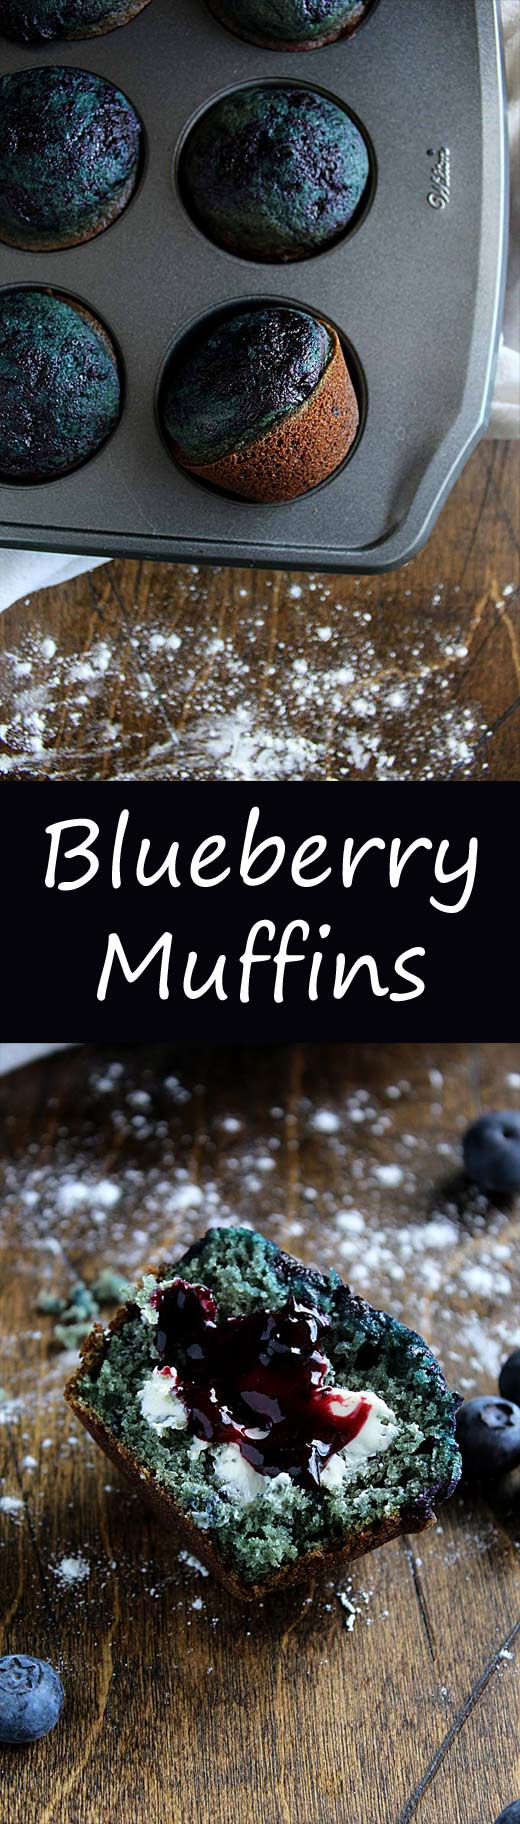 Blueberry Swirl Muffins | Blueberry Muffins | Easy Blueberry Muffins | Healthy Muffin Recipe